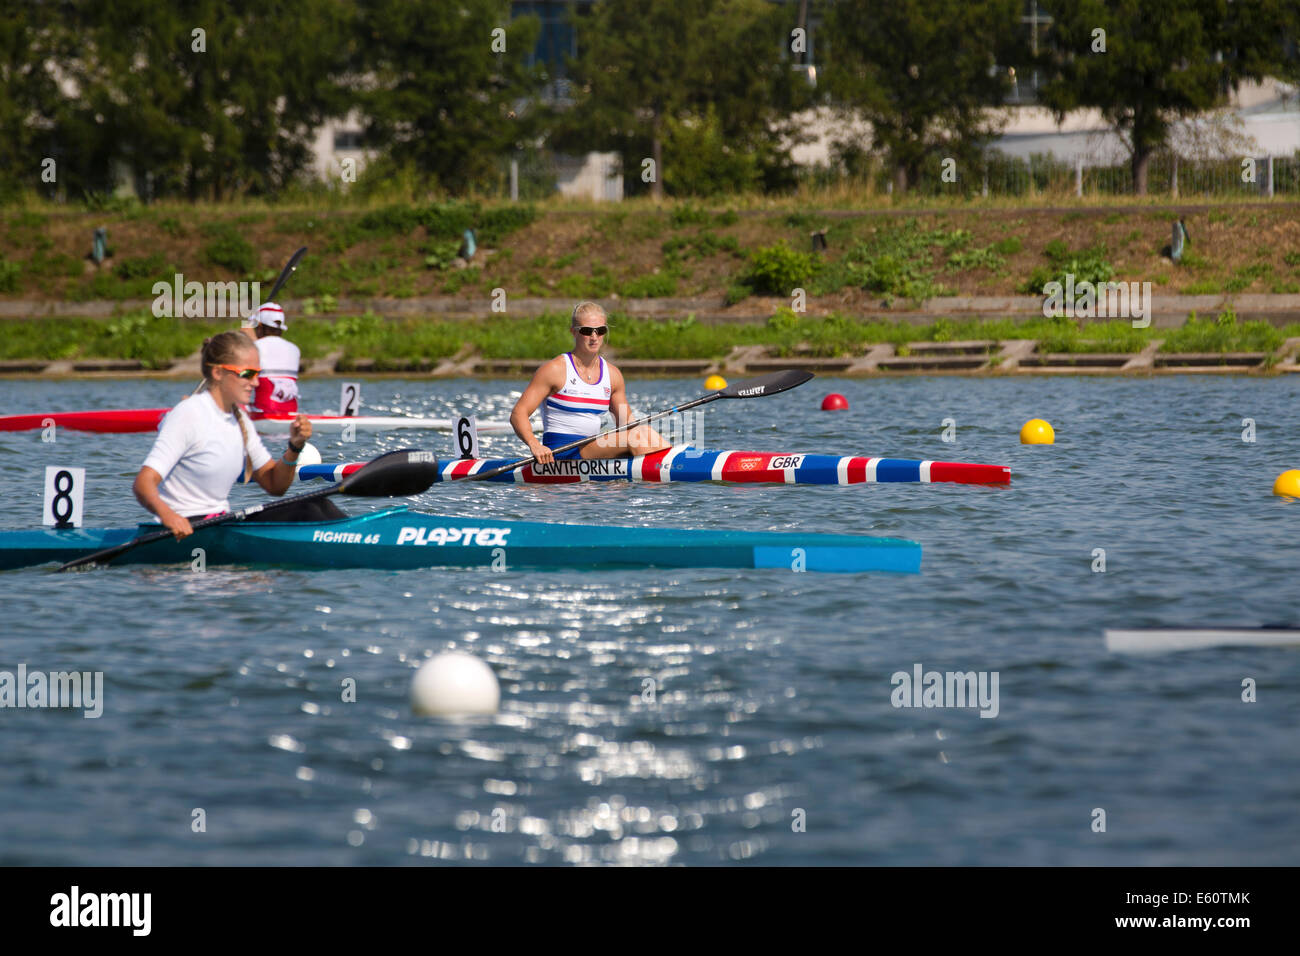 Moscow, Russia. 10th Aug, 2014. Day five of 2014 ICF Canoe Sprint World Championships on Rowing canal in Krylatsky, - Stock Image